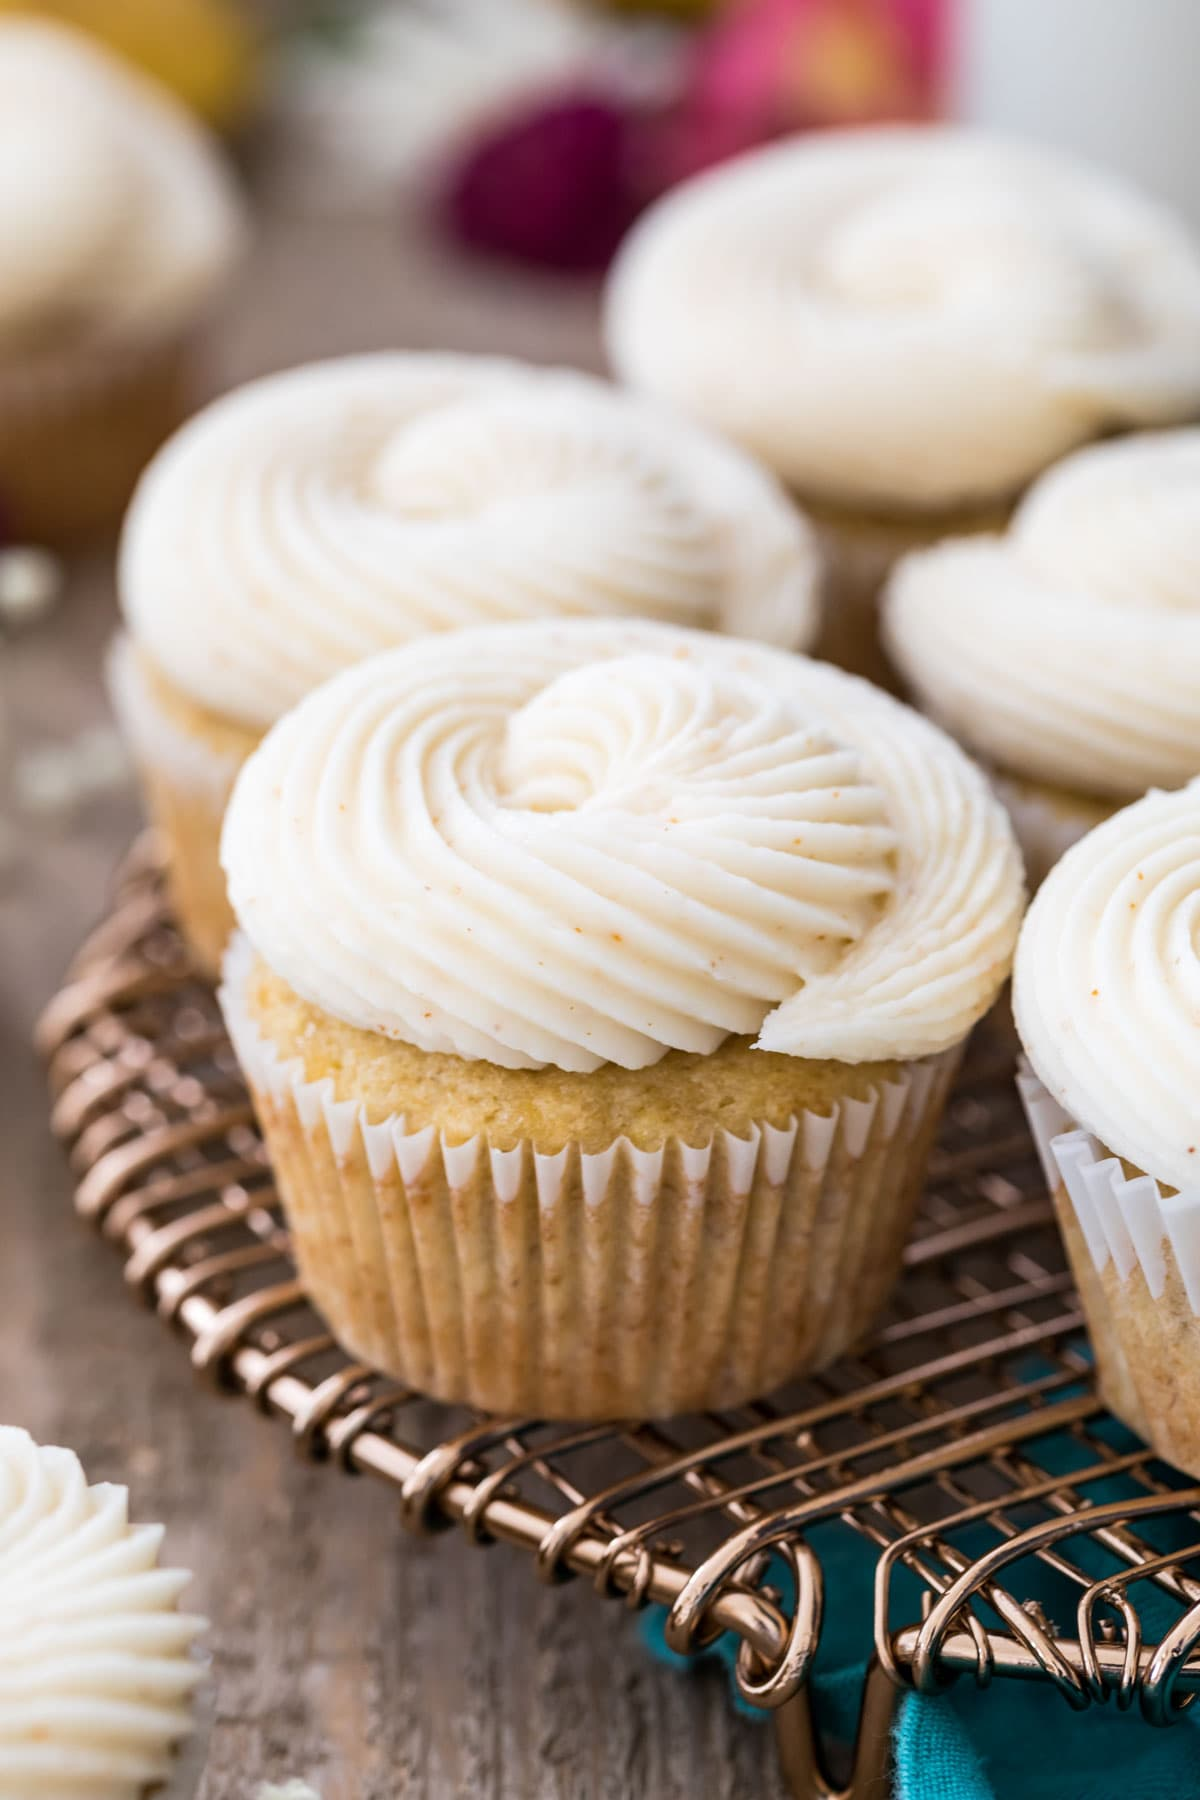 Tray of frosted banana cupcakes